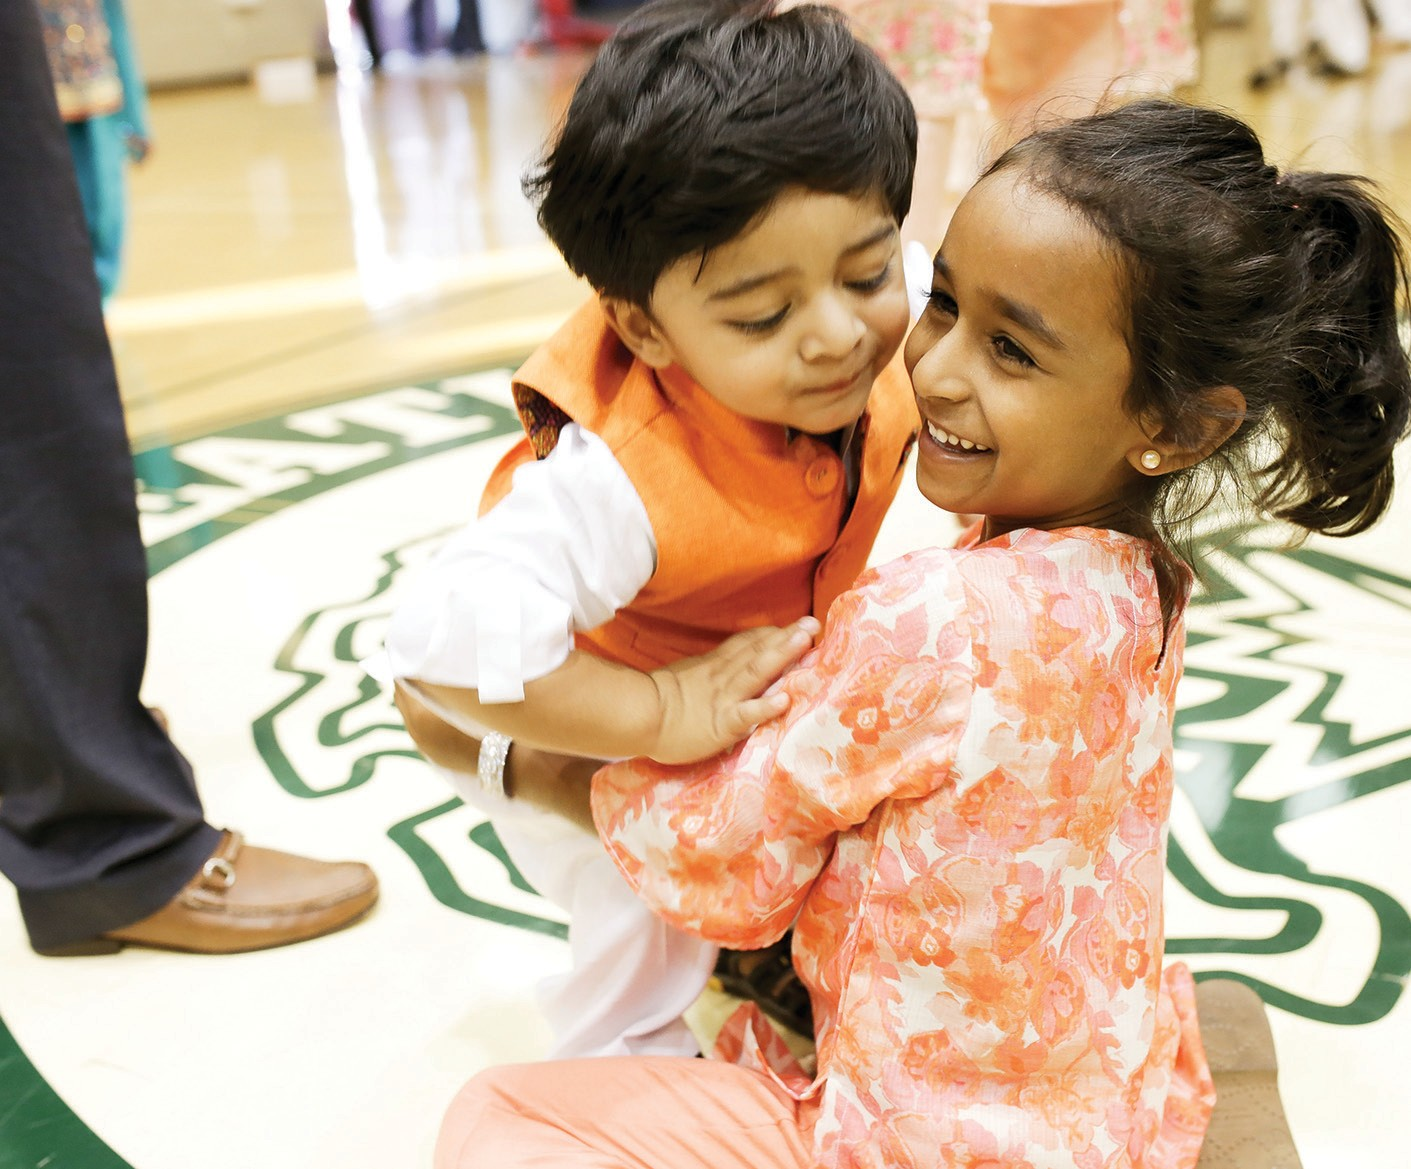 A HAPPY TIME—Six-year-old Zara Konkader, right, embraces 1-year-old Shaan Iqbal, both of Newbury Park, following an Eid-al-Adha prayer on Sept. 1 at Dos Venitos Community Center in Newbury Park. BOBBY CURTIS/Acorn Newspapers